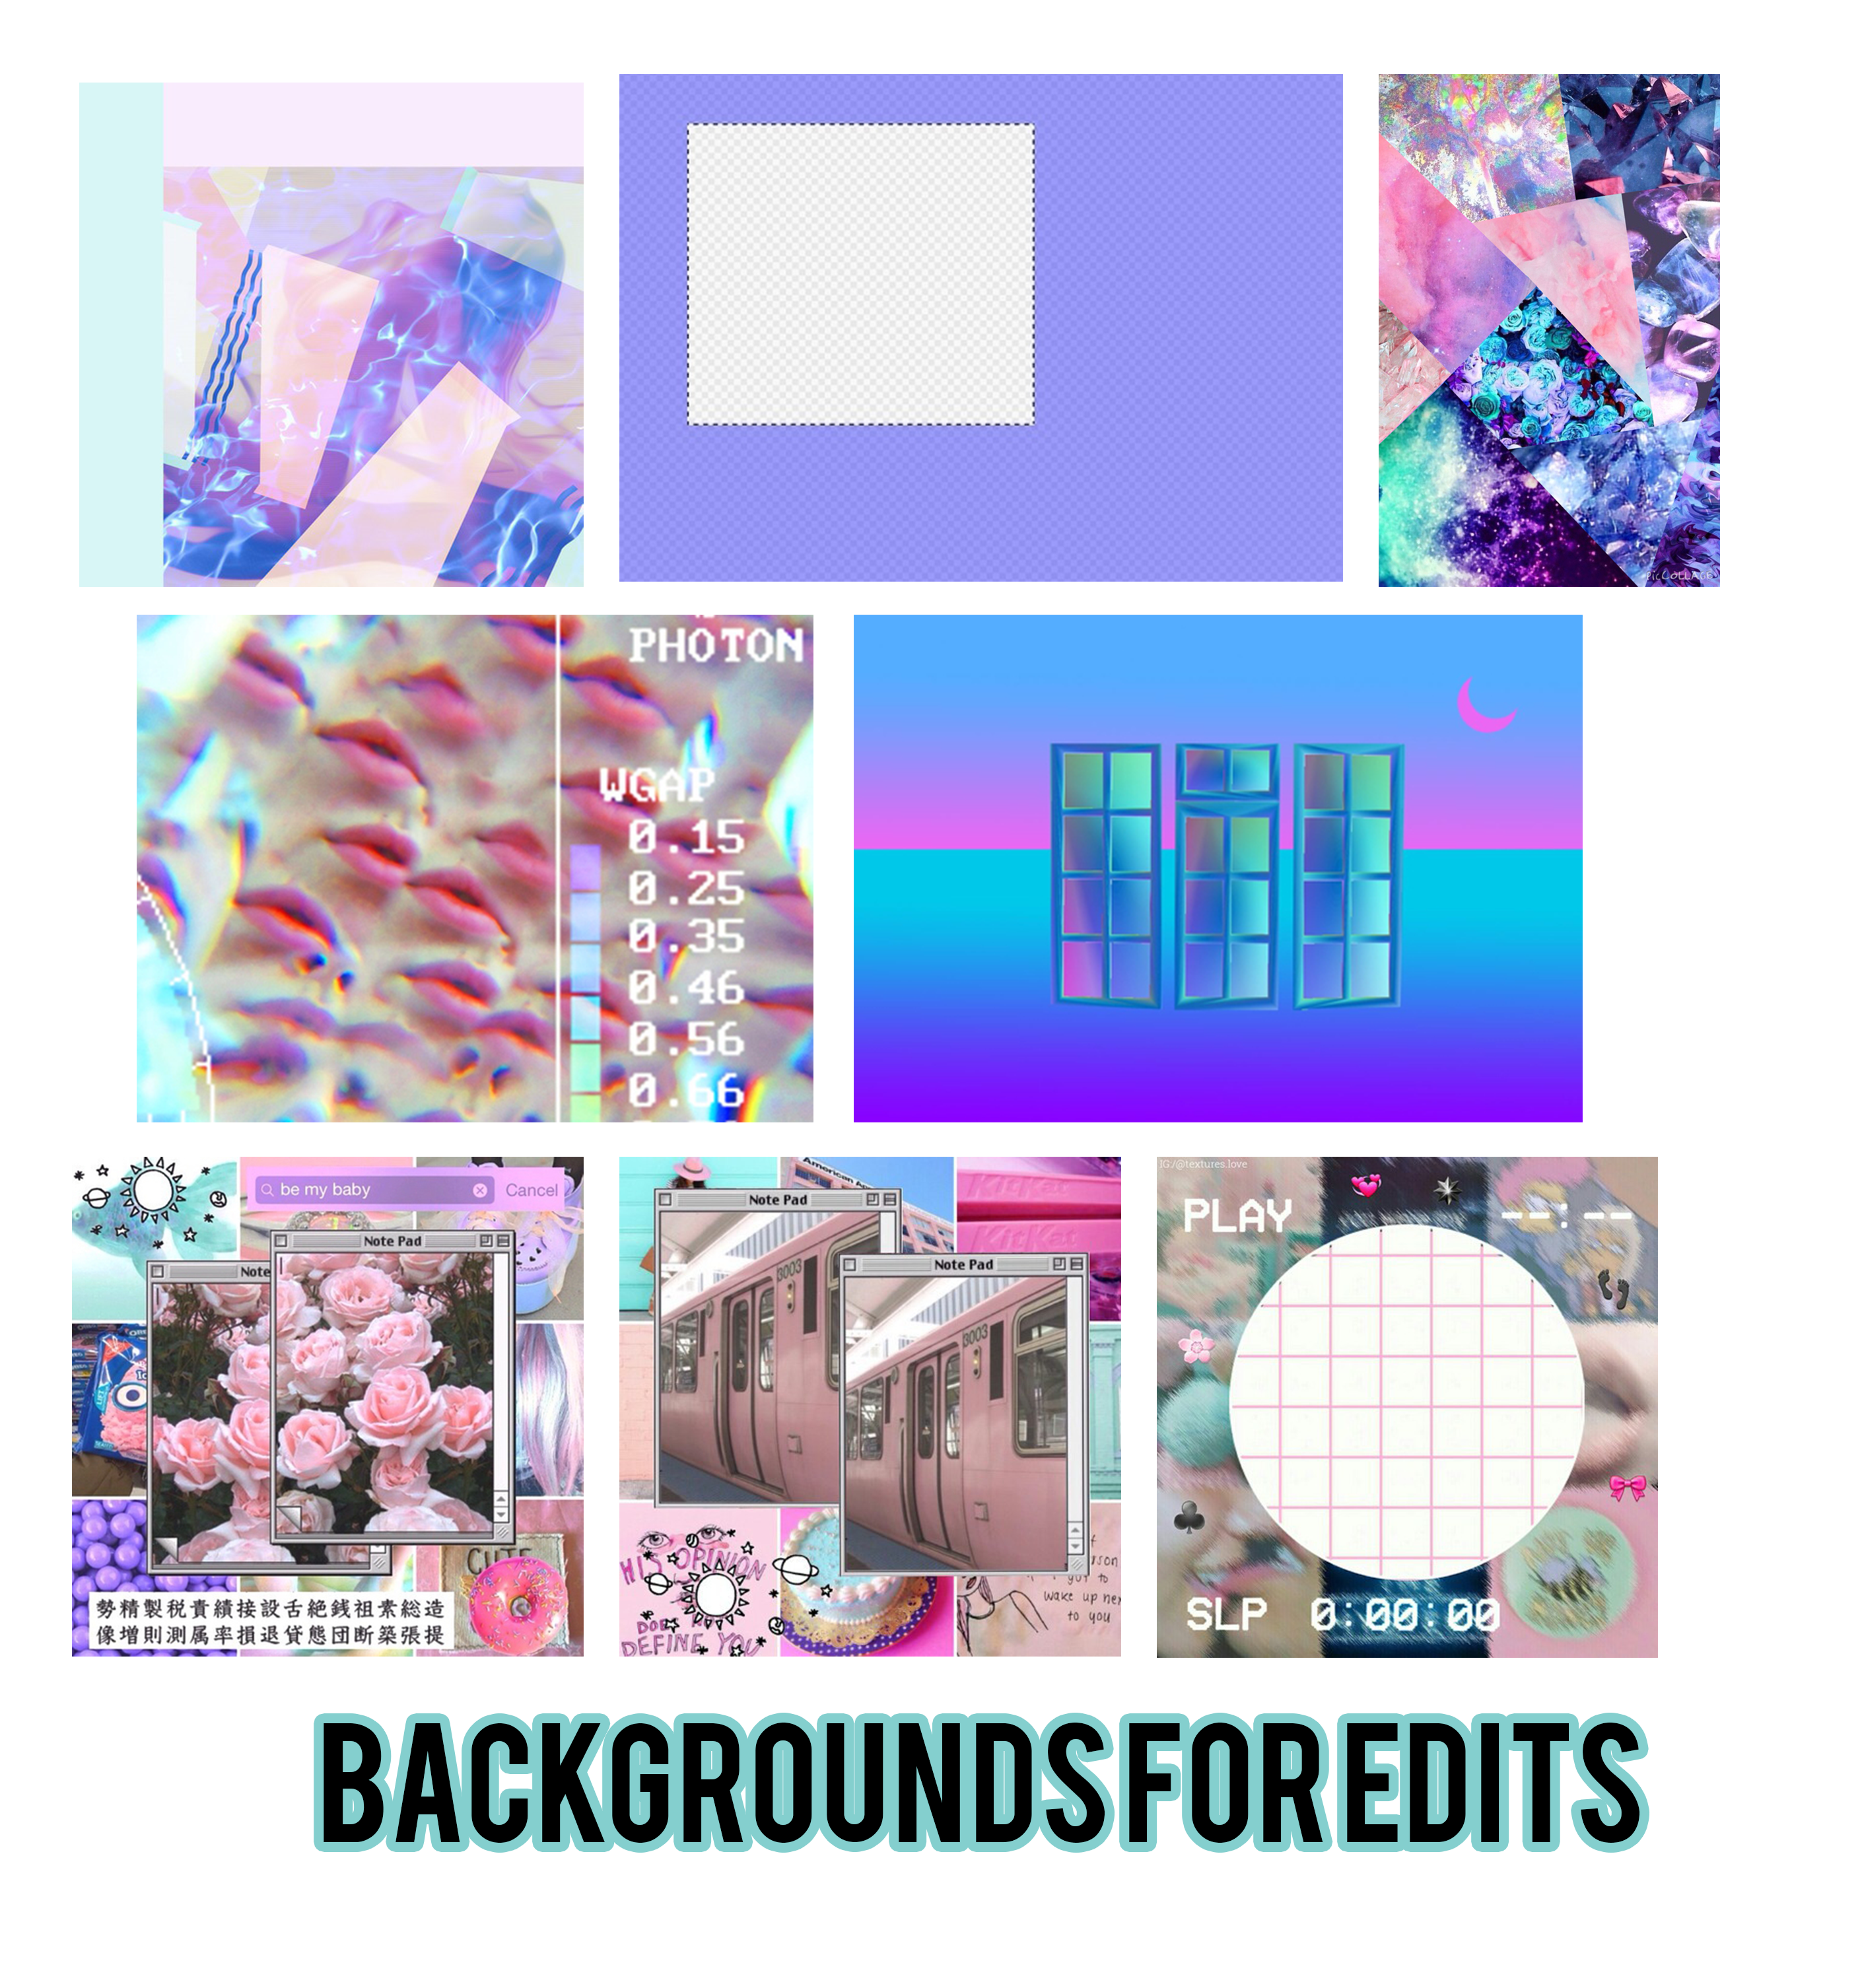 Vaporwave png pack. Backgrounds for edits by